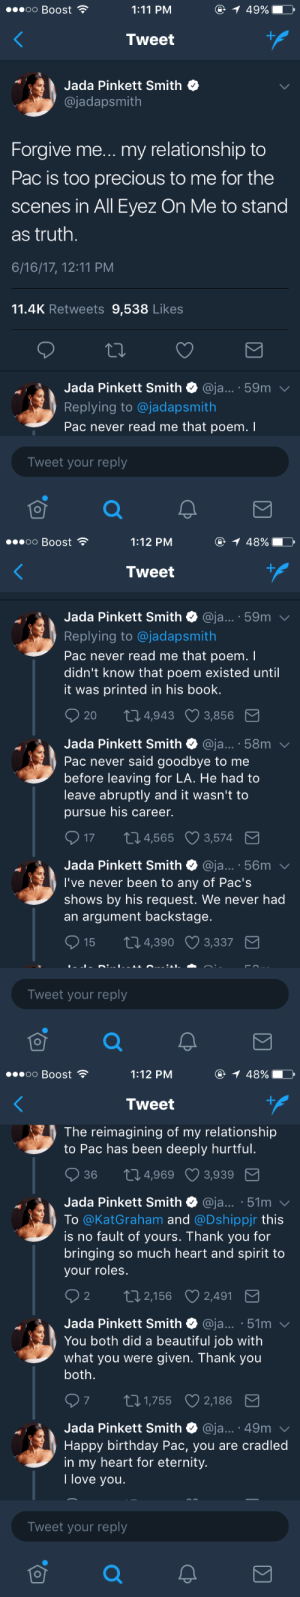 Beautiful, Birthday, and Jada Pinkett Smith: oo Boost  1:11 PM  49%  Tweet  Jada Pinkett Smith  @jadapsmith  Forgive me... my relationship to  Pac is too precious to me for the  scenes in All Eyez On Me to stand  as truth.  6/16/17, 12:11 PM  11.4K Retweets 9,538 Likes  Jada Pinkett Smith @ja... 59m  Replying to @jadapsmith  Pac never read me that poem. I  Tweet your reply   oo Boost  1:12 PM  48%  Tweet  Jada Pinkett Smith @ja... 59m  Replying to @jadapsmith  Pac never read me that poem.I  didn't know that poem existed until  it was printed in his book.  20  4,943 3,856  Jada Pinkett Smith @ja... 58m  Pac never said goodbye to me  before leaving for LA. He had to  leave abruptly and it wasn't to  pursue his career.  17  4,565  3,574  Jada Pinkett Smith @ja... 56m  I've never been to any of Pac's  shows by his request. We never had  an argument backstage.  15 104,390 3,337  Tweet your reply   oo Boost  1:12 PM  48%  Tweet  The reimagining of my relationship  to Pac has been deeply hurtful  36  4,969 3,939  Jada Pinkett Smith @ja... 51m  Το @KatGraham and @Dshippr this  is no fault of yours. Thank you for  bringing so much heart and spirit to  your roles  2  2,156  2,491  Jada Pinkett Smith @ja... 51m  You both did a beautiful job with  what you were given. Thank you  both  97 t01,755 2,186  Jada Pinkett Smith @ja... 49m  Happy birthday Pac, you are cradled  in my heart for eternity.  I love you  Tweet your reply